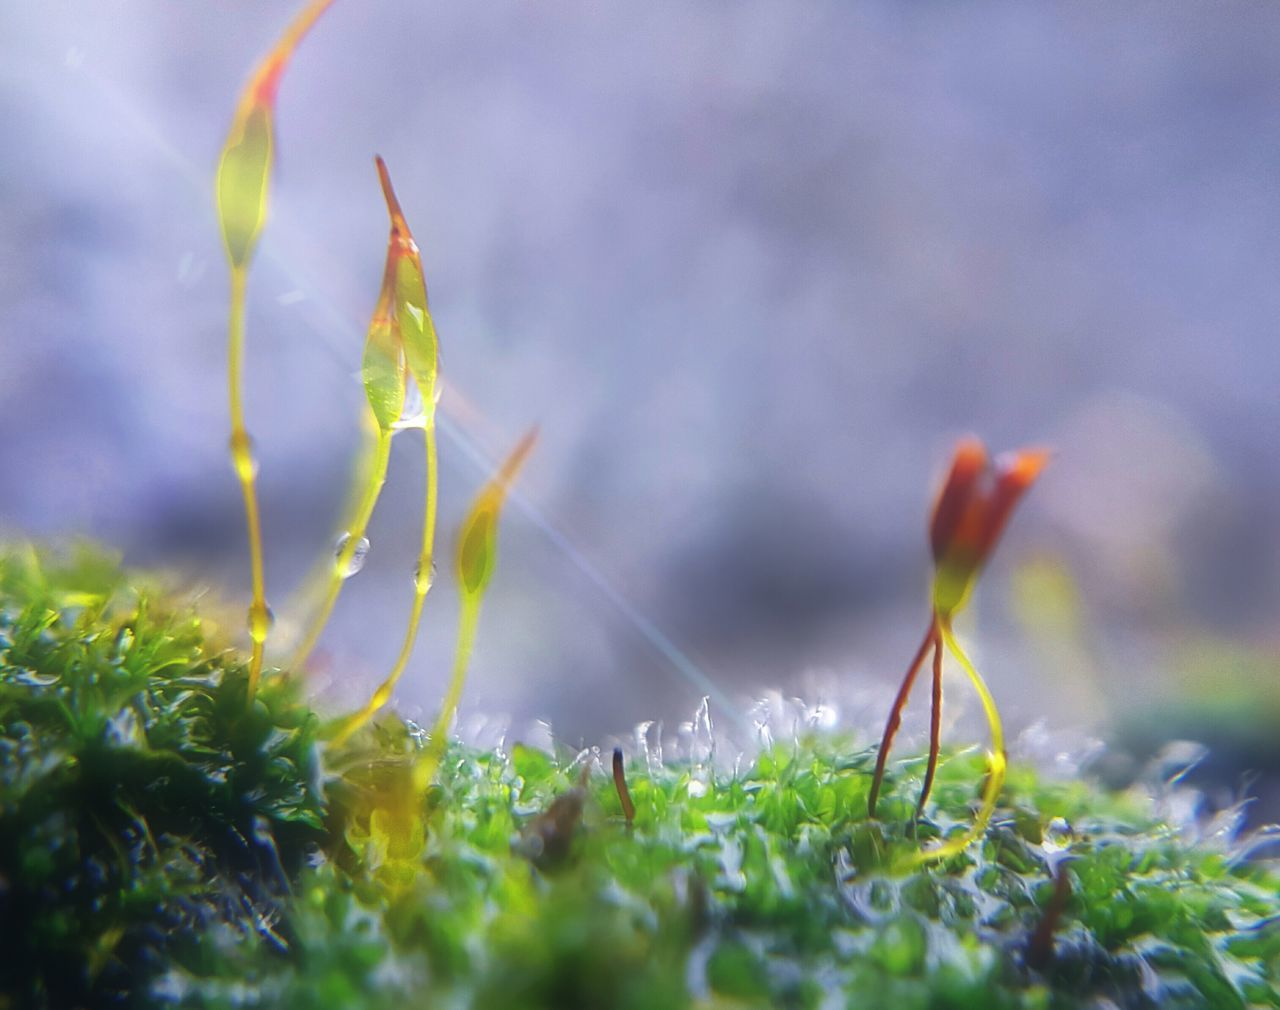 Growth Grass Nature Green Color Freshness Fragility Beauty In Nature Close-up Moss & Lichen Moss Macro Macro Photography Macro Beauty Malephotographerofthemonth From My Point Of View EyeEm Nature Lover Nature Photography Nature On Your Doorstep Drops Effects & Filters Drops Of Rain